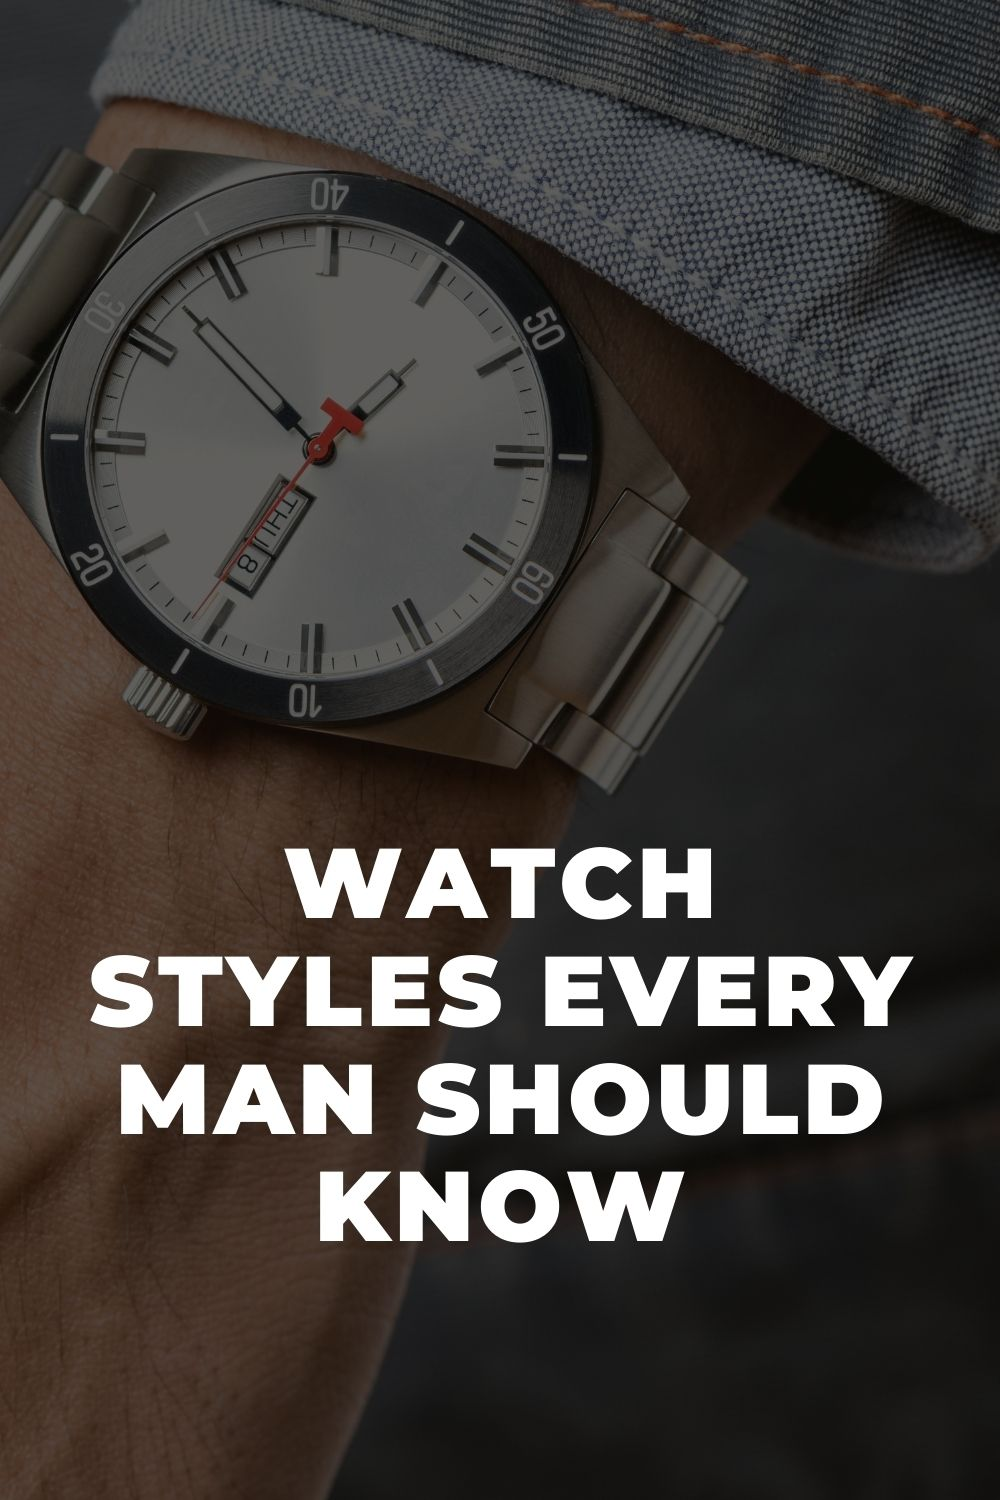 Watch Styles Every Man Should Know